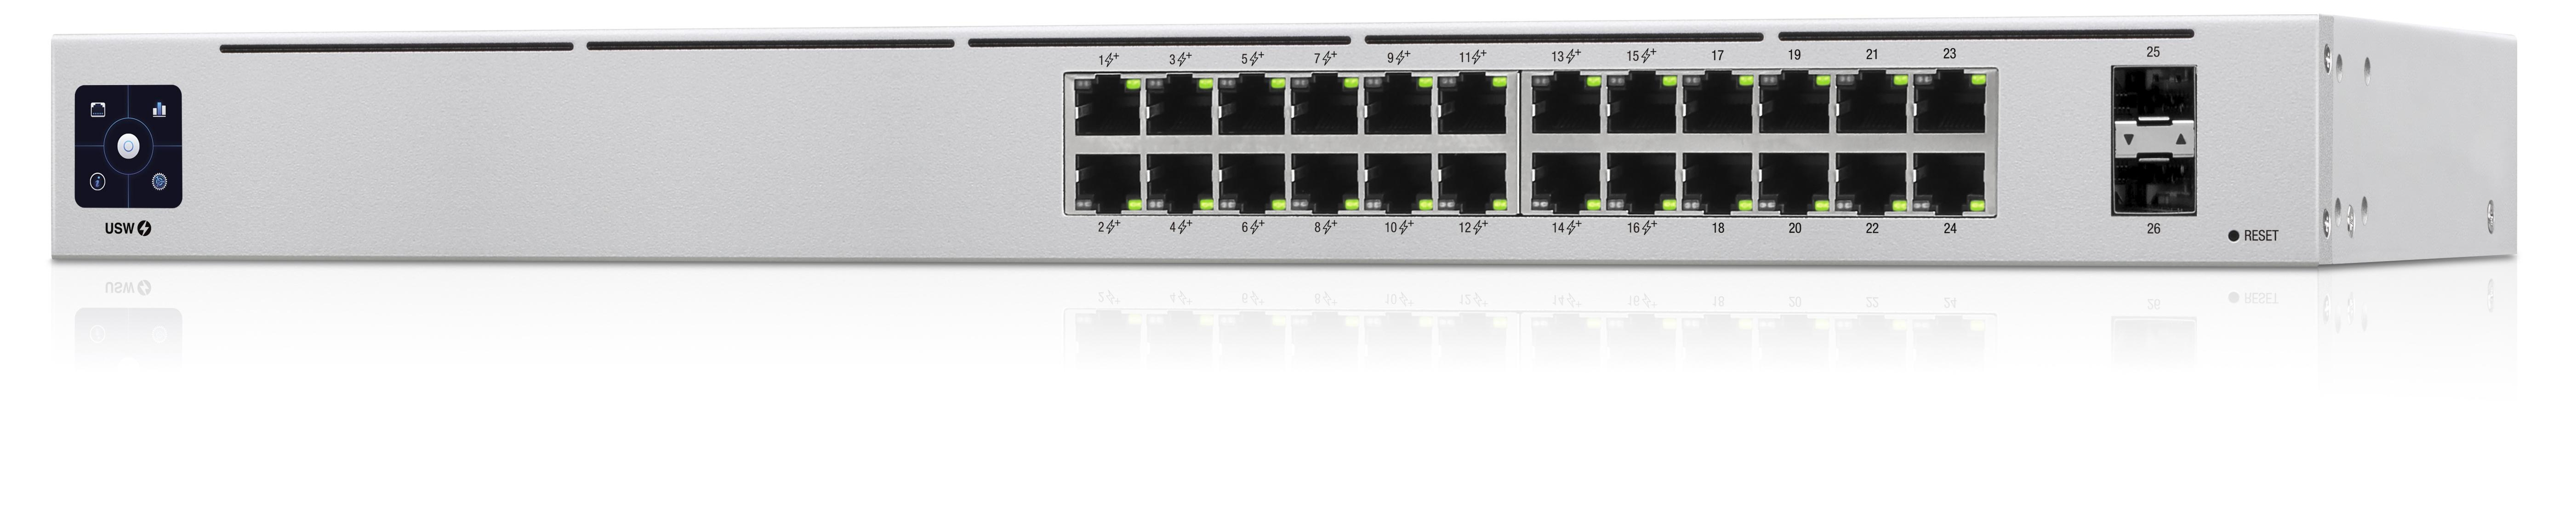 Ubiquiti UniFi USW-24-POE Gen2 26 Port PoE+ Managed Gigabit Switch